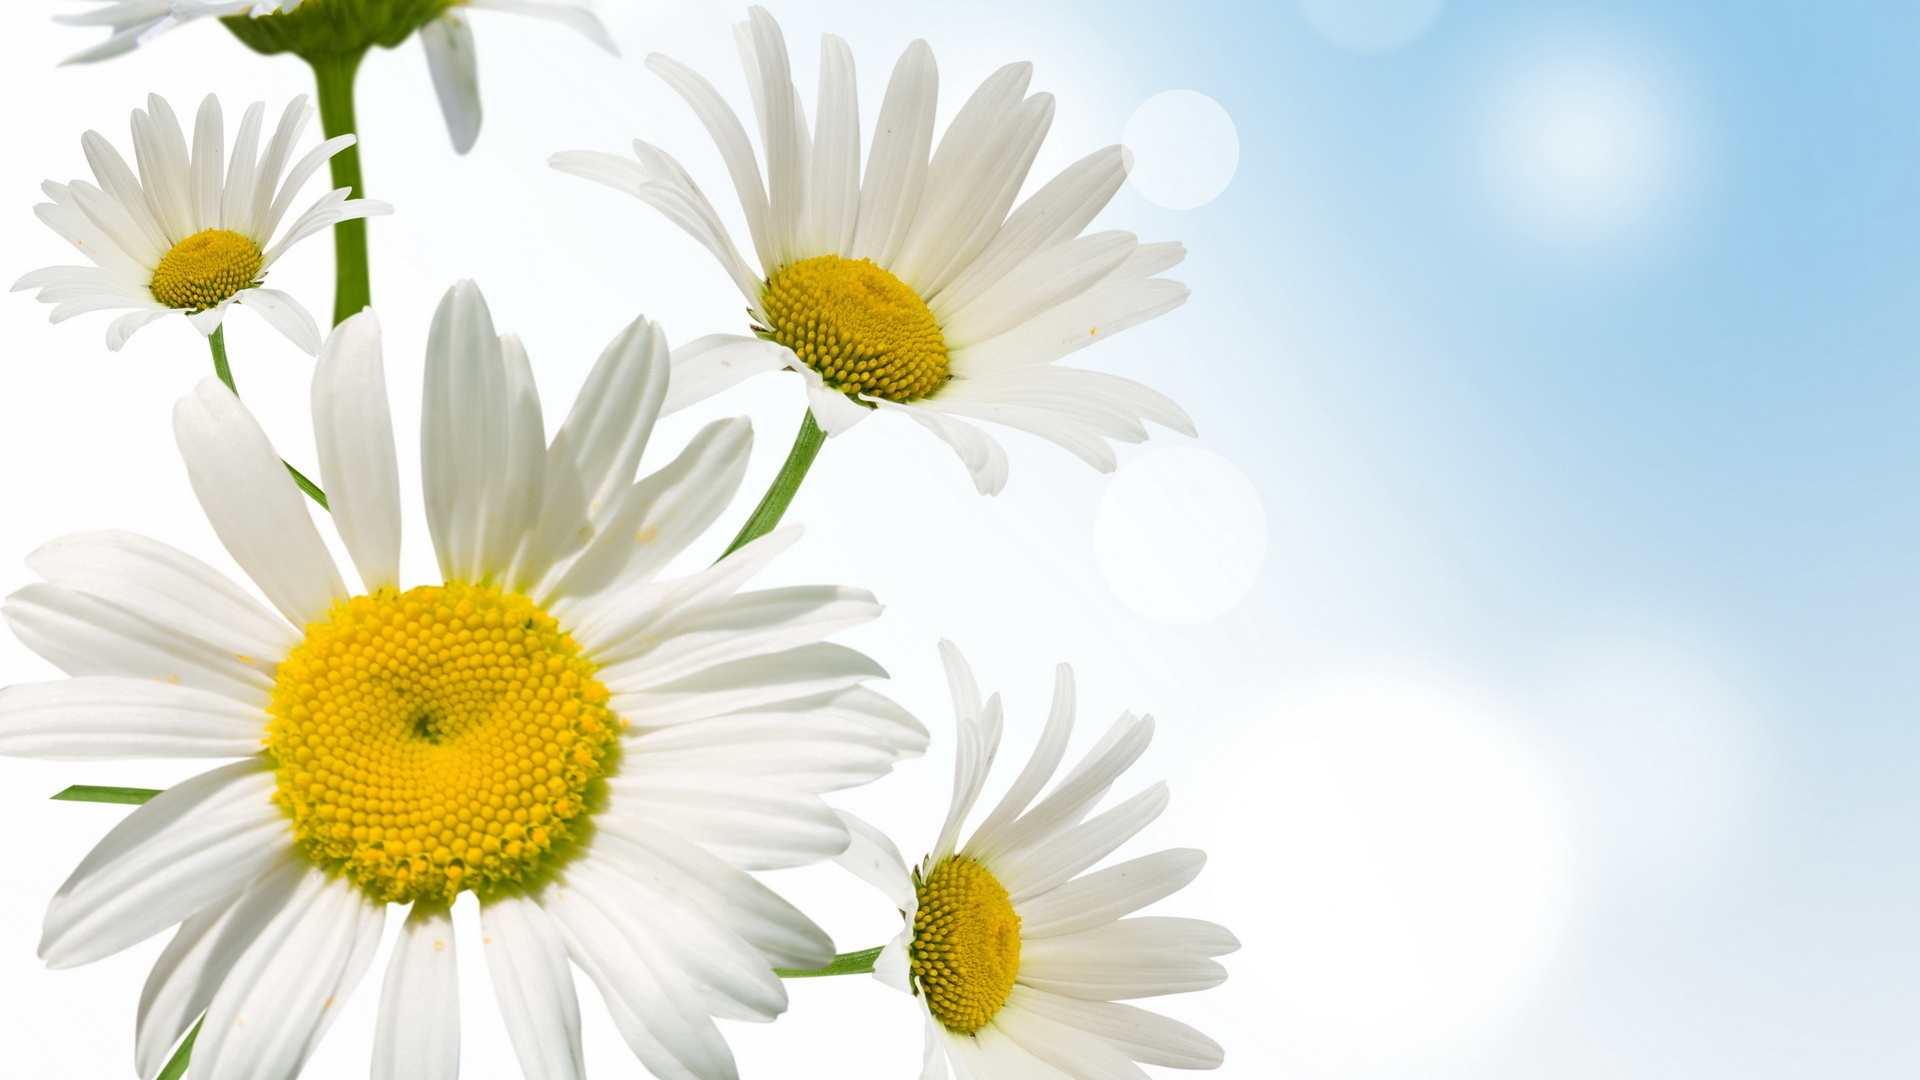 april  showers bring may flowers daisies download wallpaper